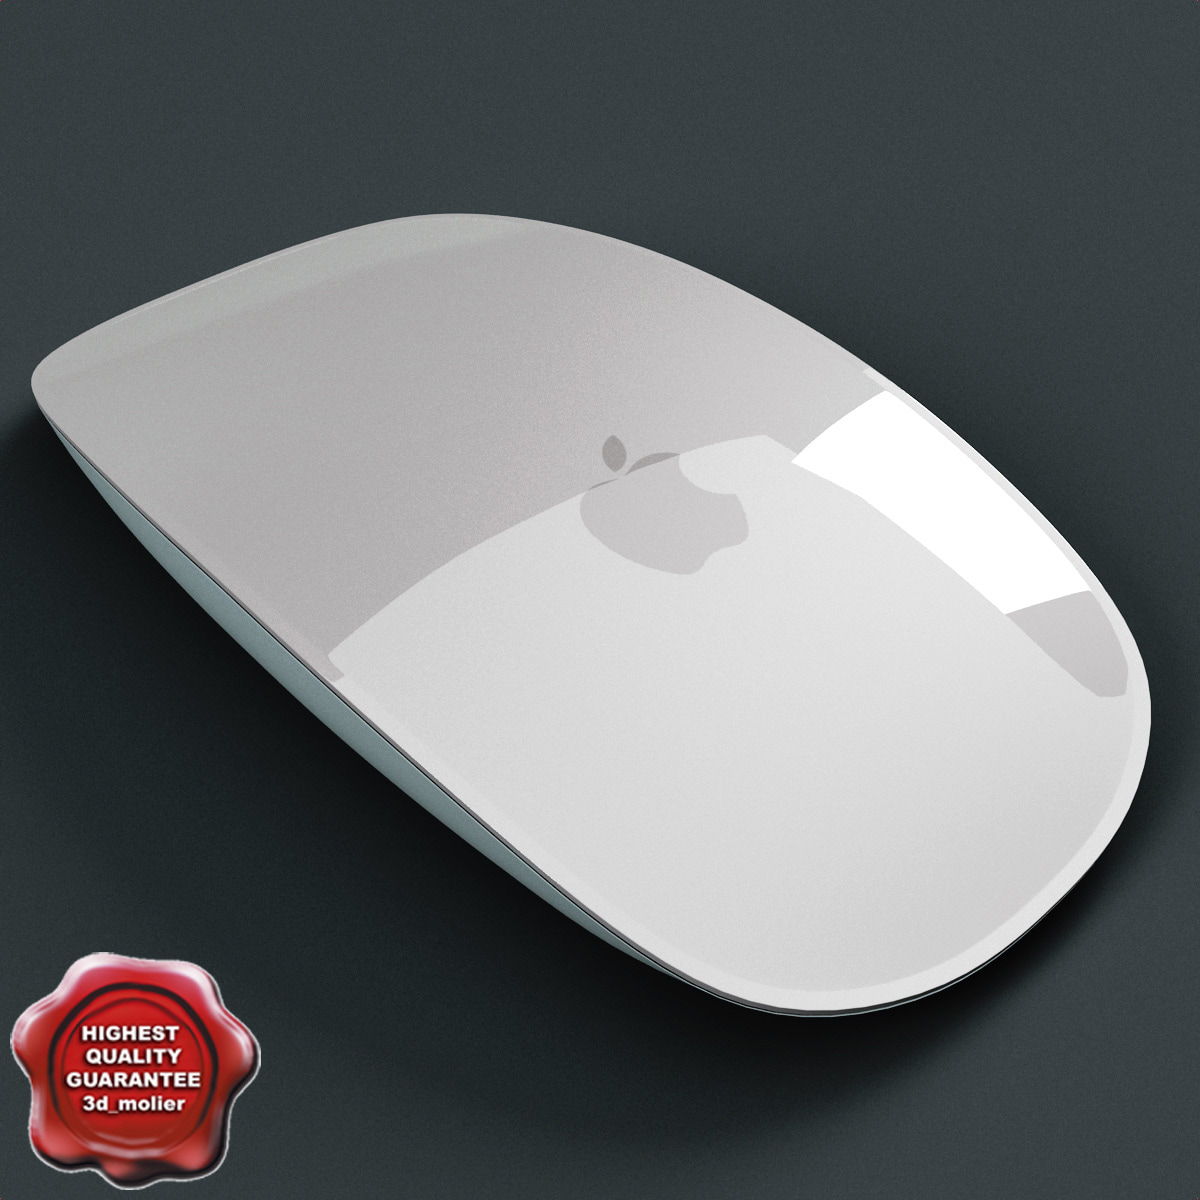 Apple_Mouse_00.jpg